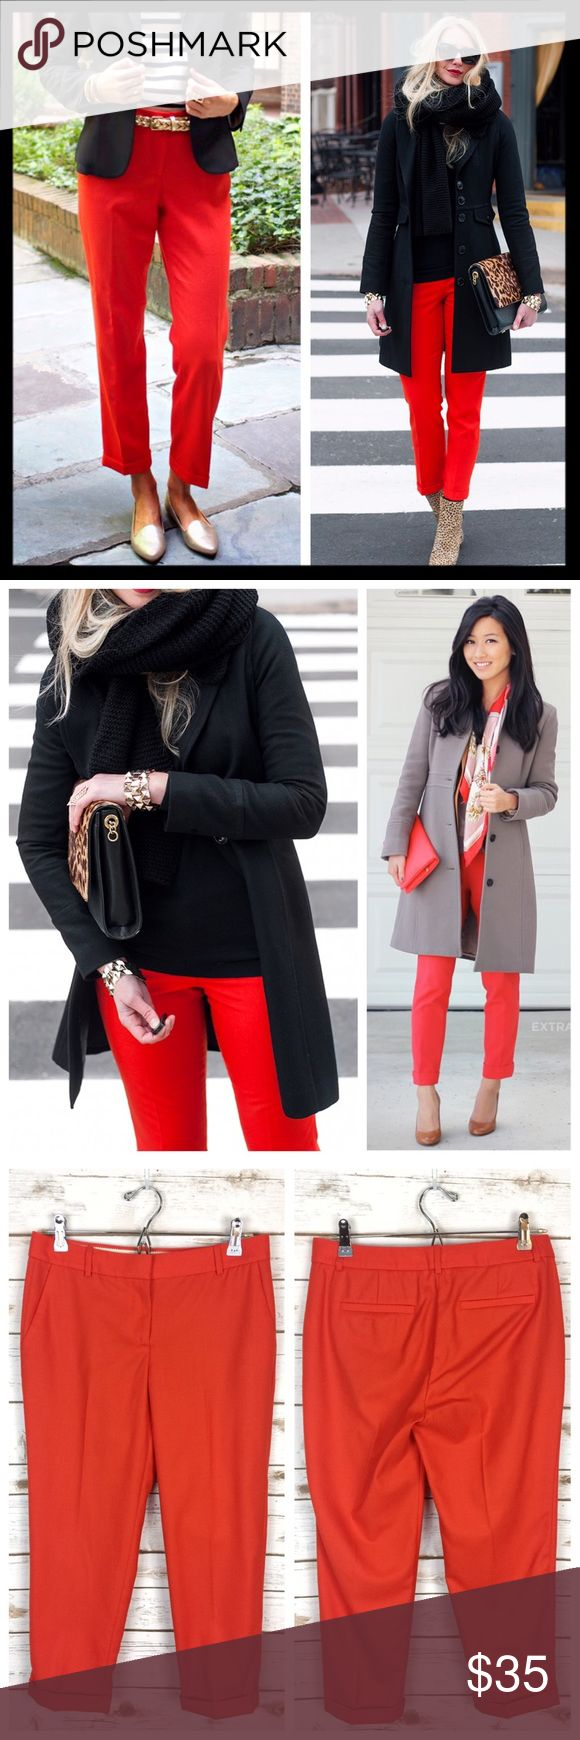 """j. crew // red wool cafe capri crop petite pants Introducing our wildly flattering wool café capri—now your favorite perfect-fitting pant can be worn all year long. Crafted in lightweight wool, it's the one piece you'll need to anchor your wardrobe for fall (and beyond). Fitted through hip and thigh, with a skinny, cropped leg. Wool. Cuffed. Gorgeous color, an orangey red. In great preowned condition, no flaws to note. Size is 4P (petite) with a 24"""" inseam. Waist measures 15"""" across lying…"""